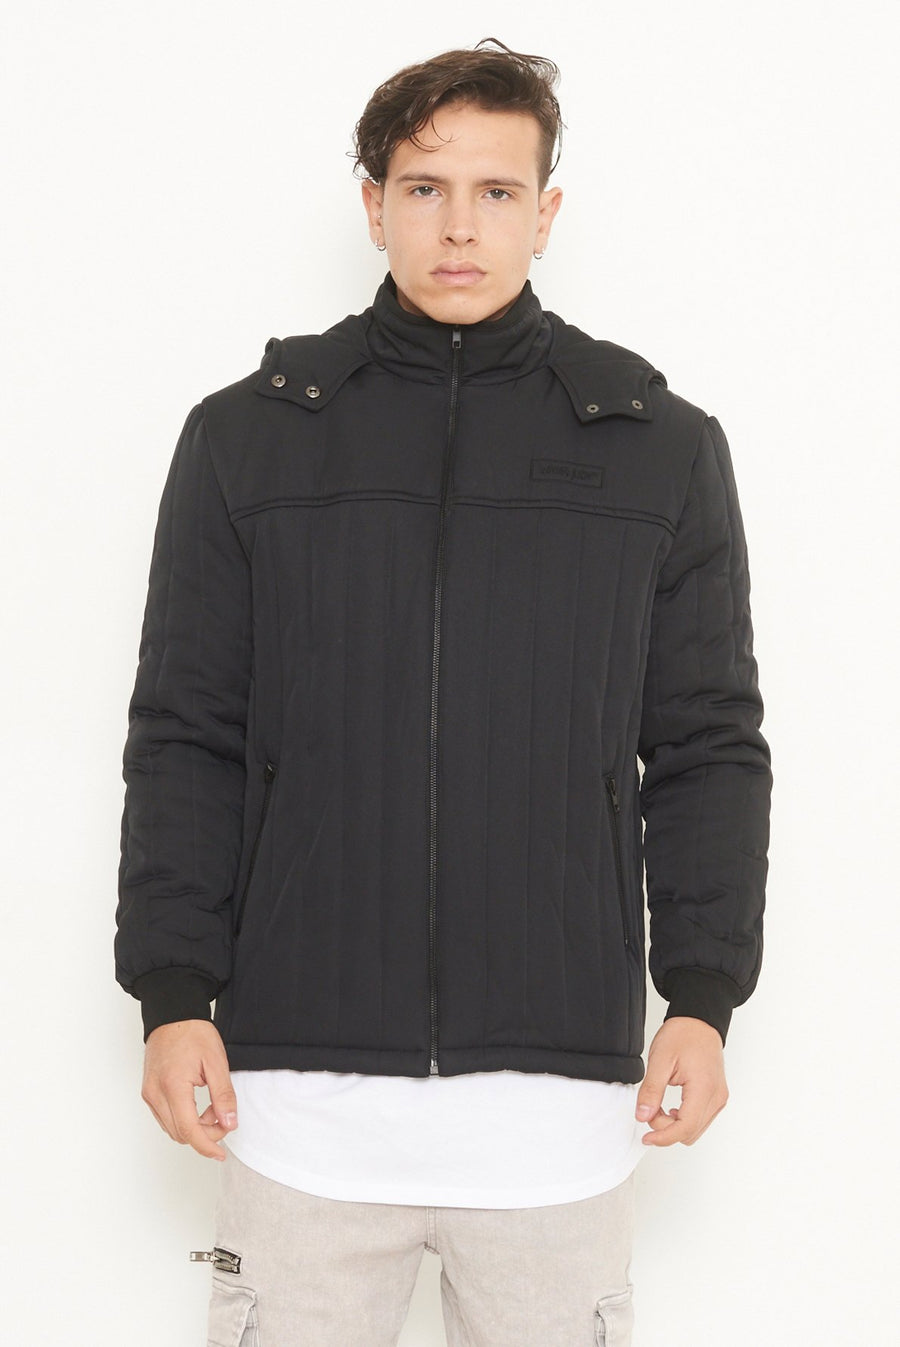 The Pact Puffer Jacket